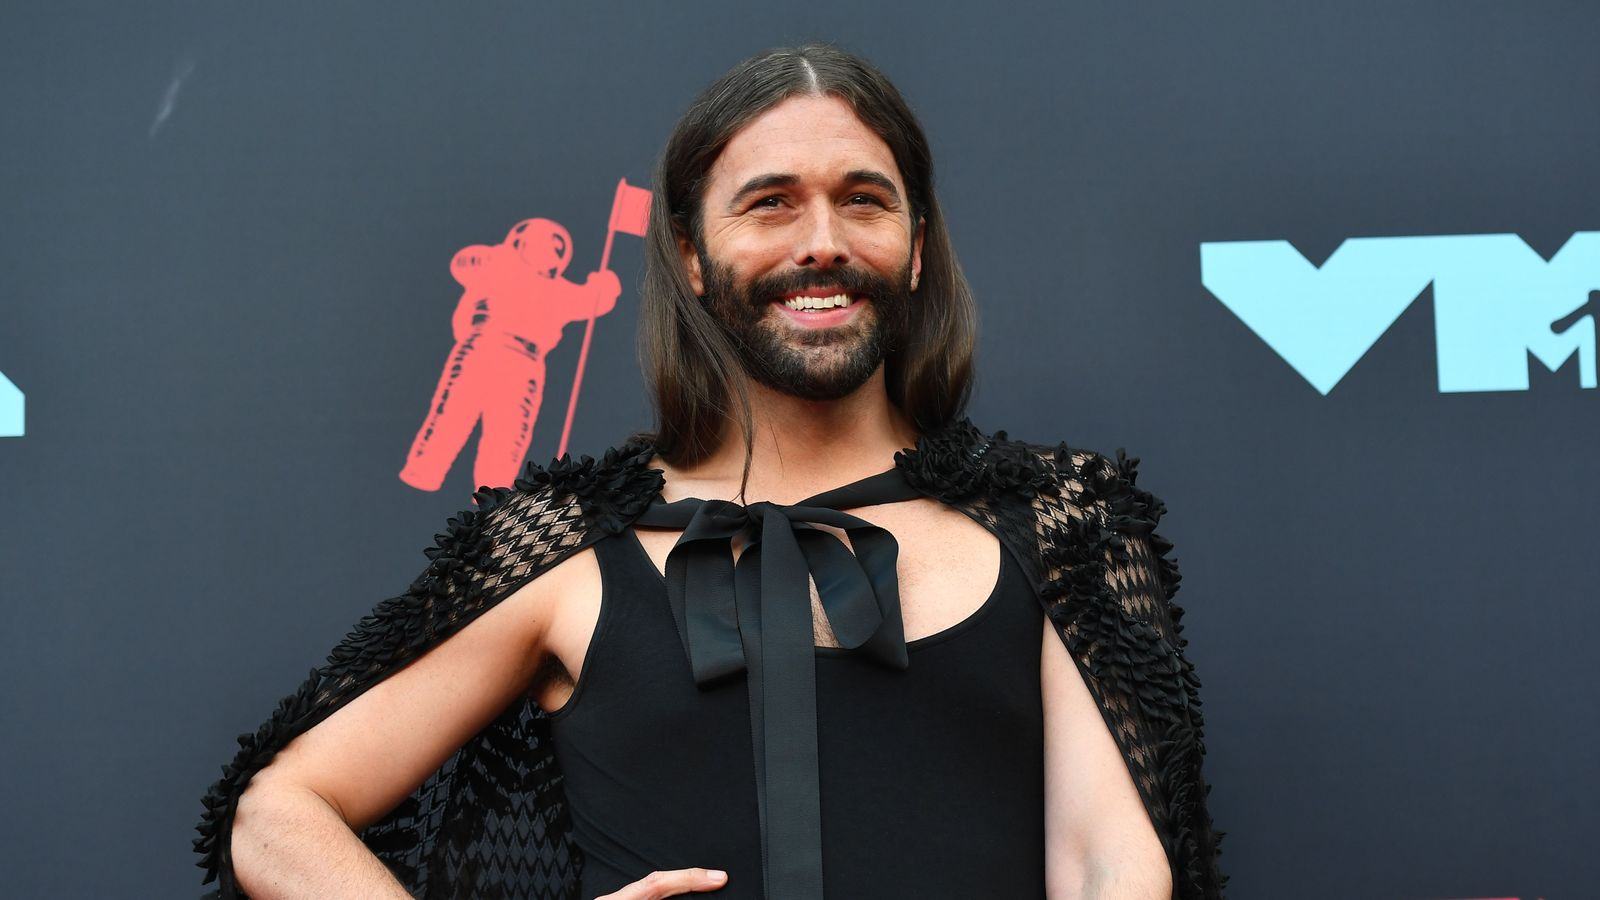 Queer Eye star Jonathan Van Ness to 'take a break' after revealing HIV diagnosis 8